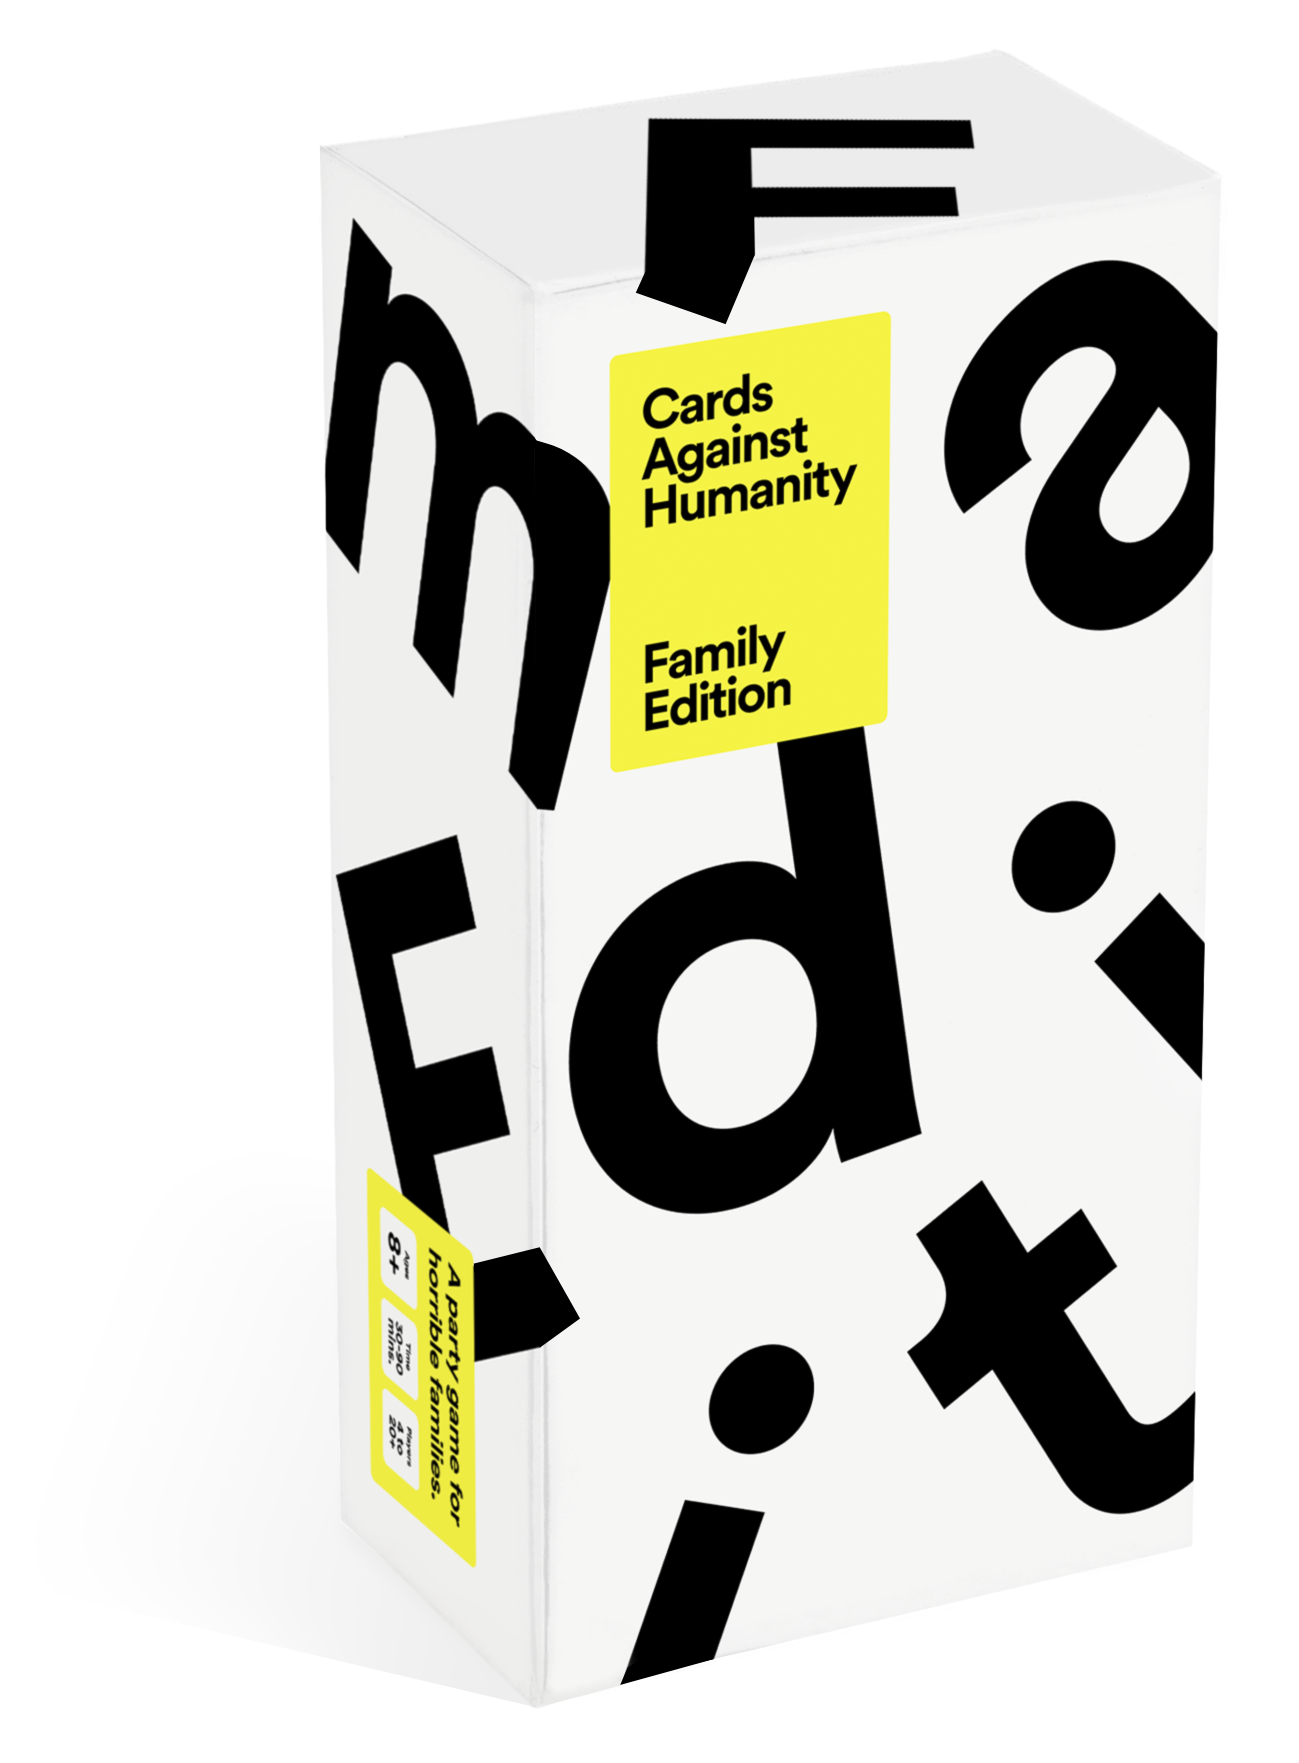 Product shot of the Cards Against Humanity Family Edition